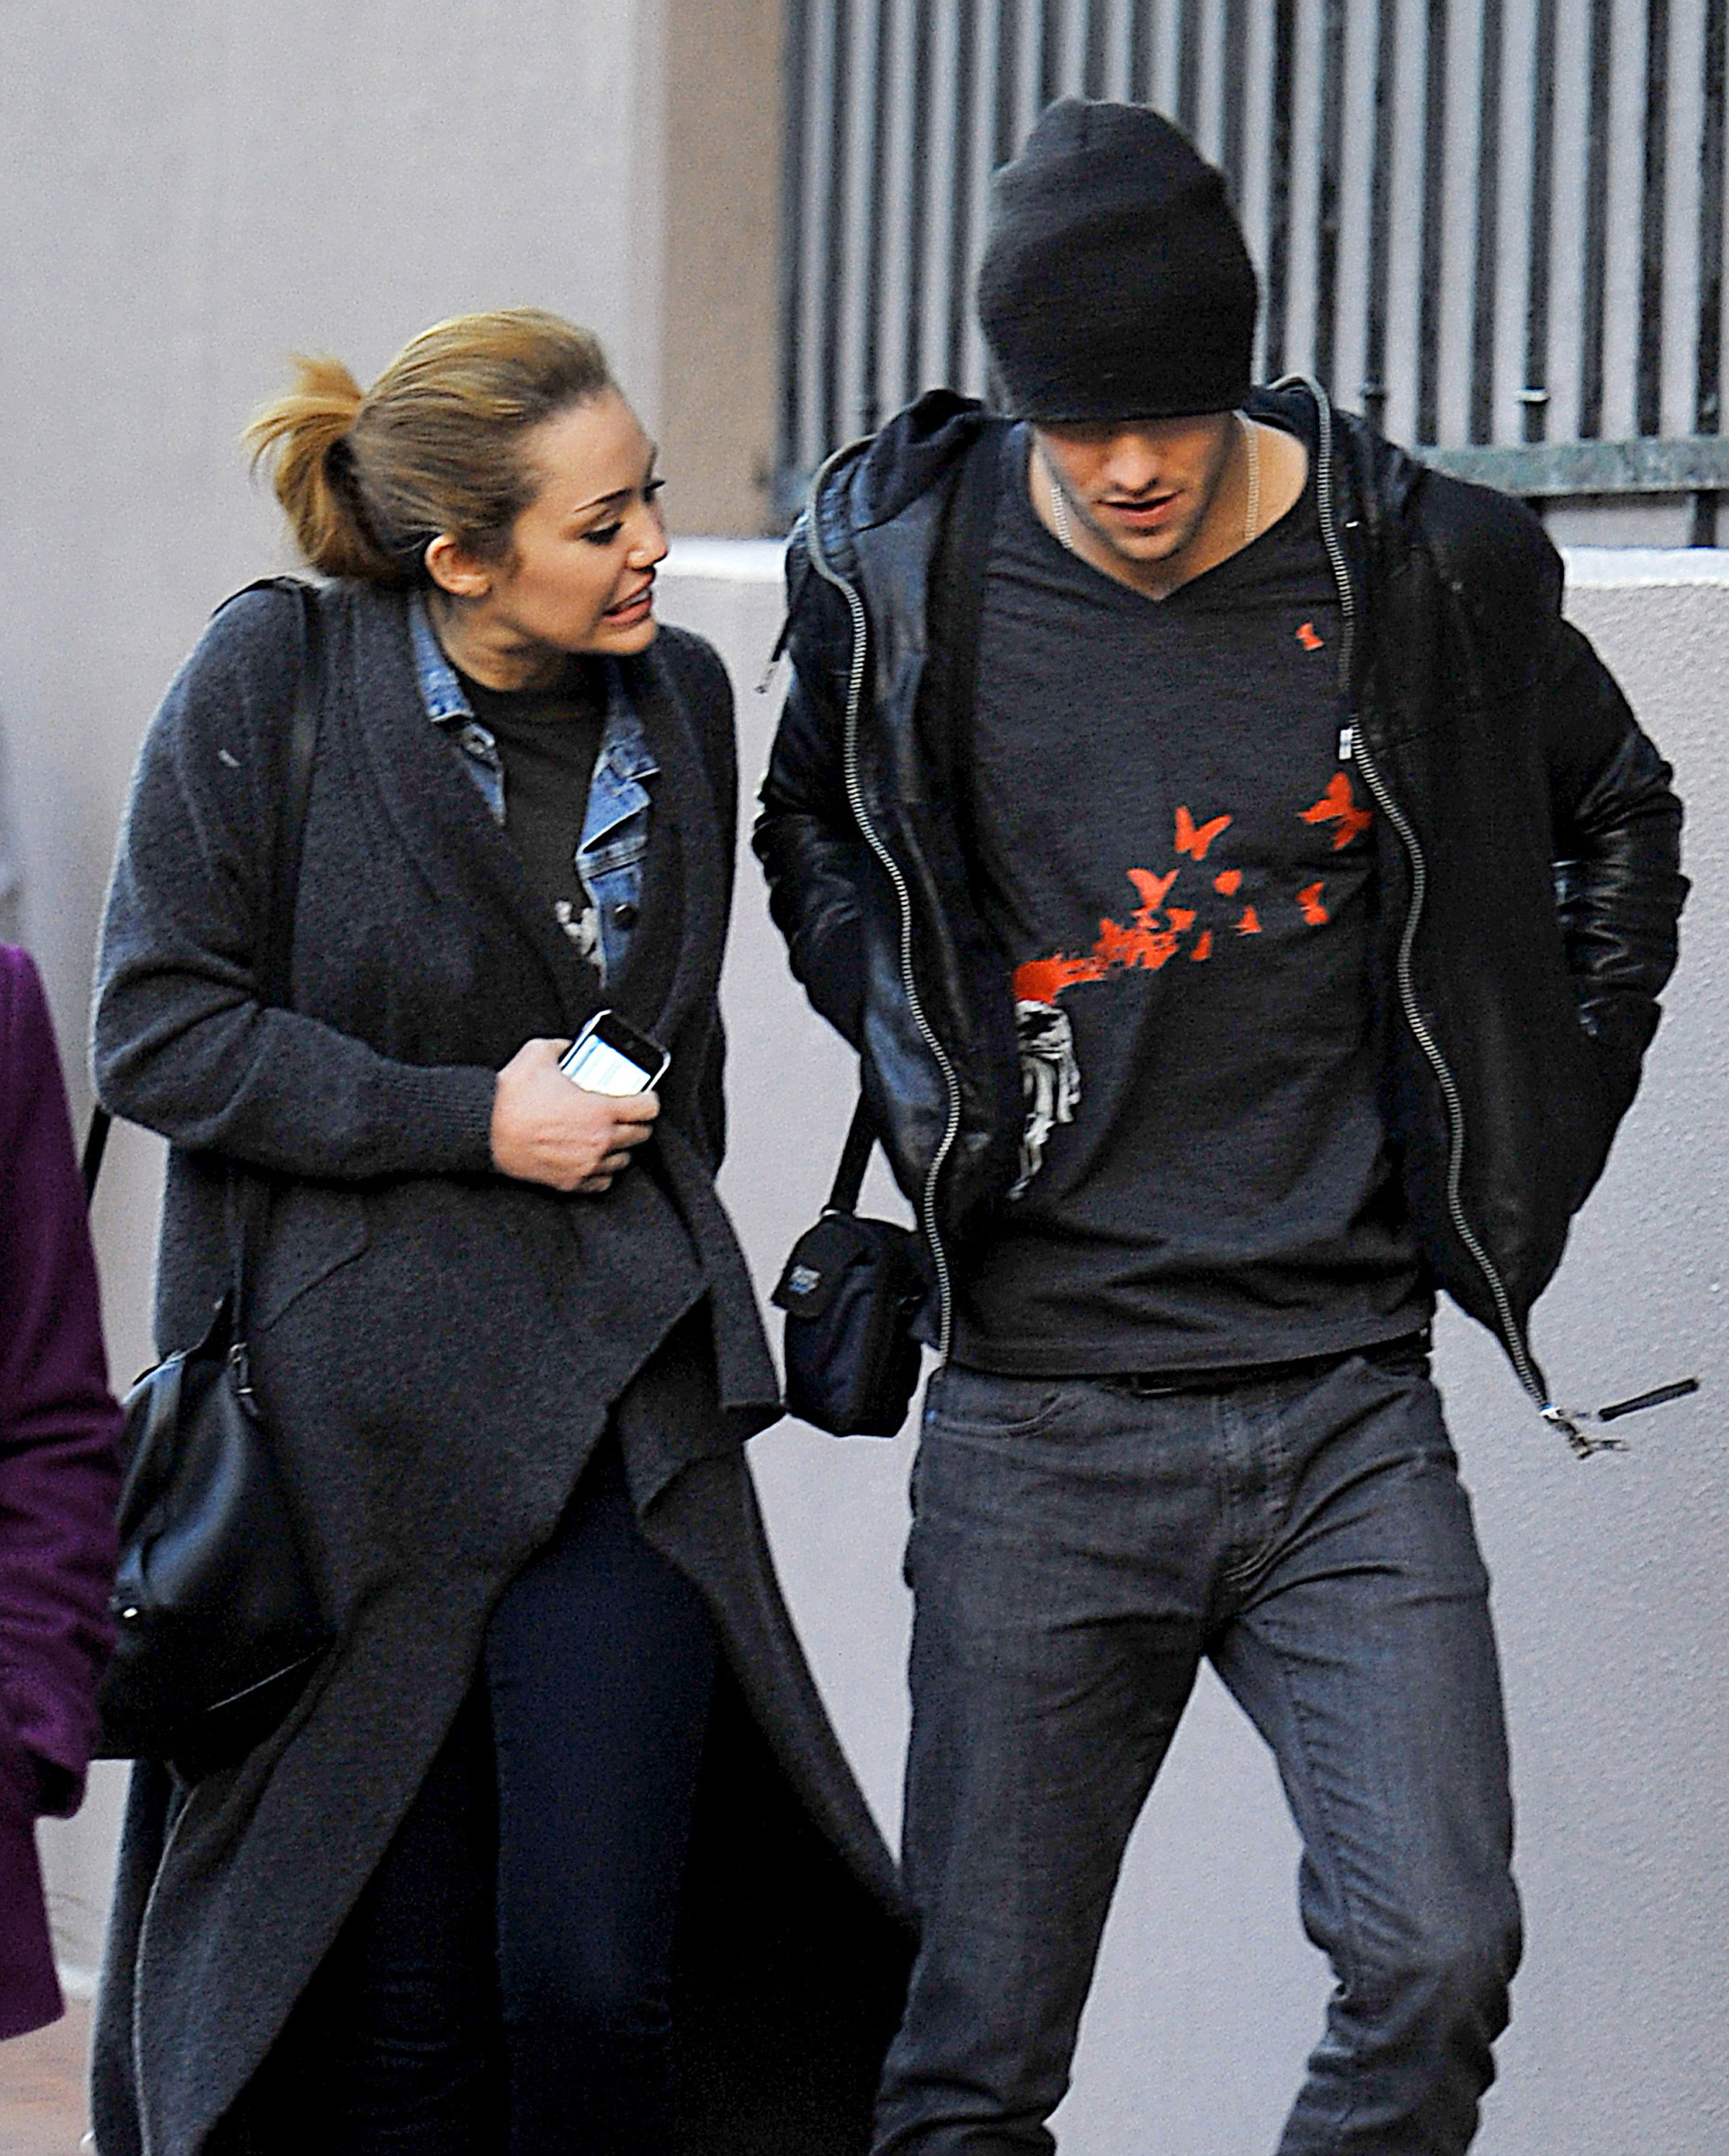 74069_tduid300116_by_mah0ne_Miley_Cyrus_Heading_Back_To_Her_Hotel_In_New_Orleans_13.01.11_001_122_463lo.jpg